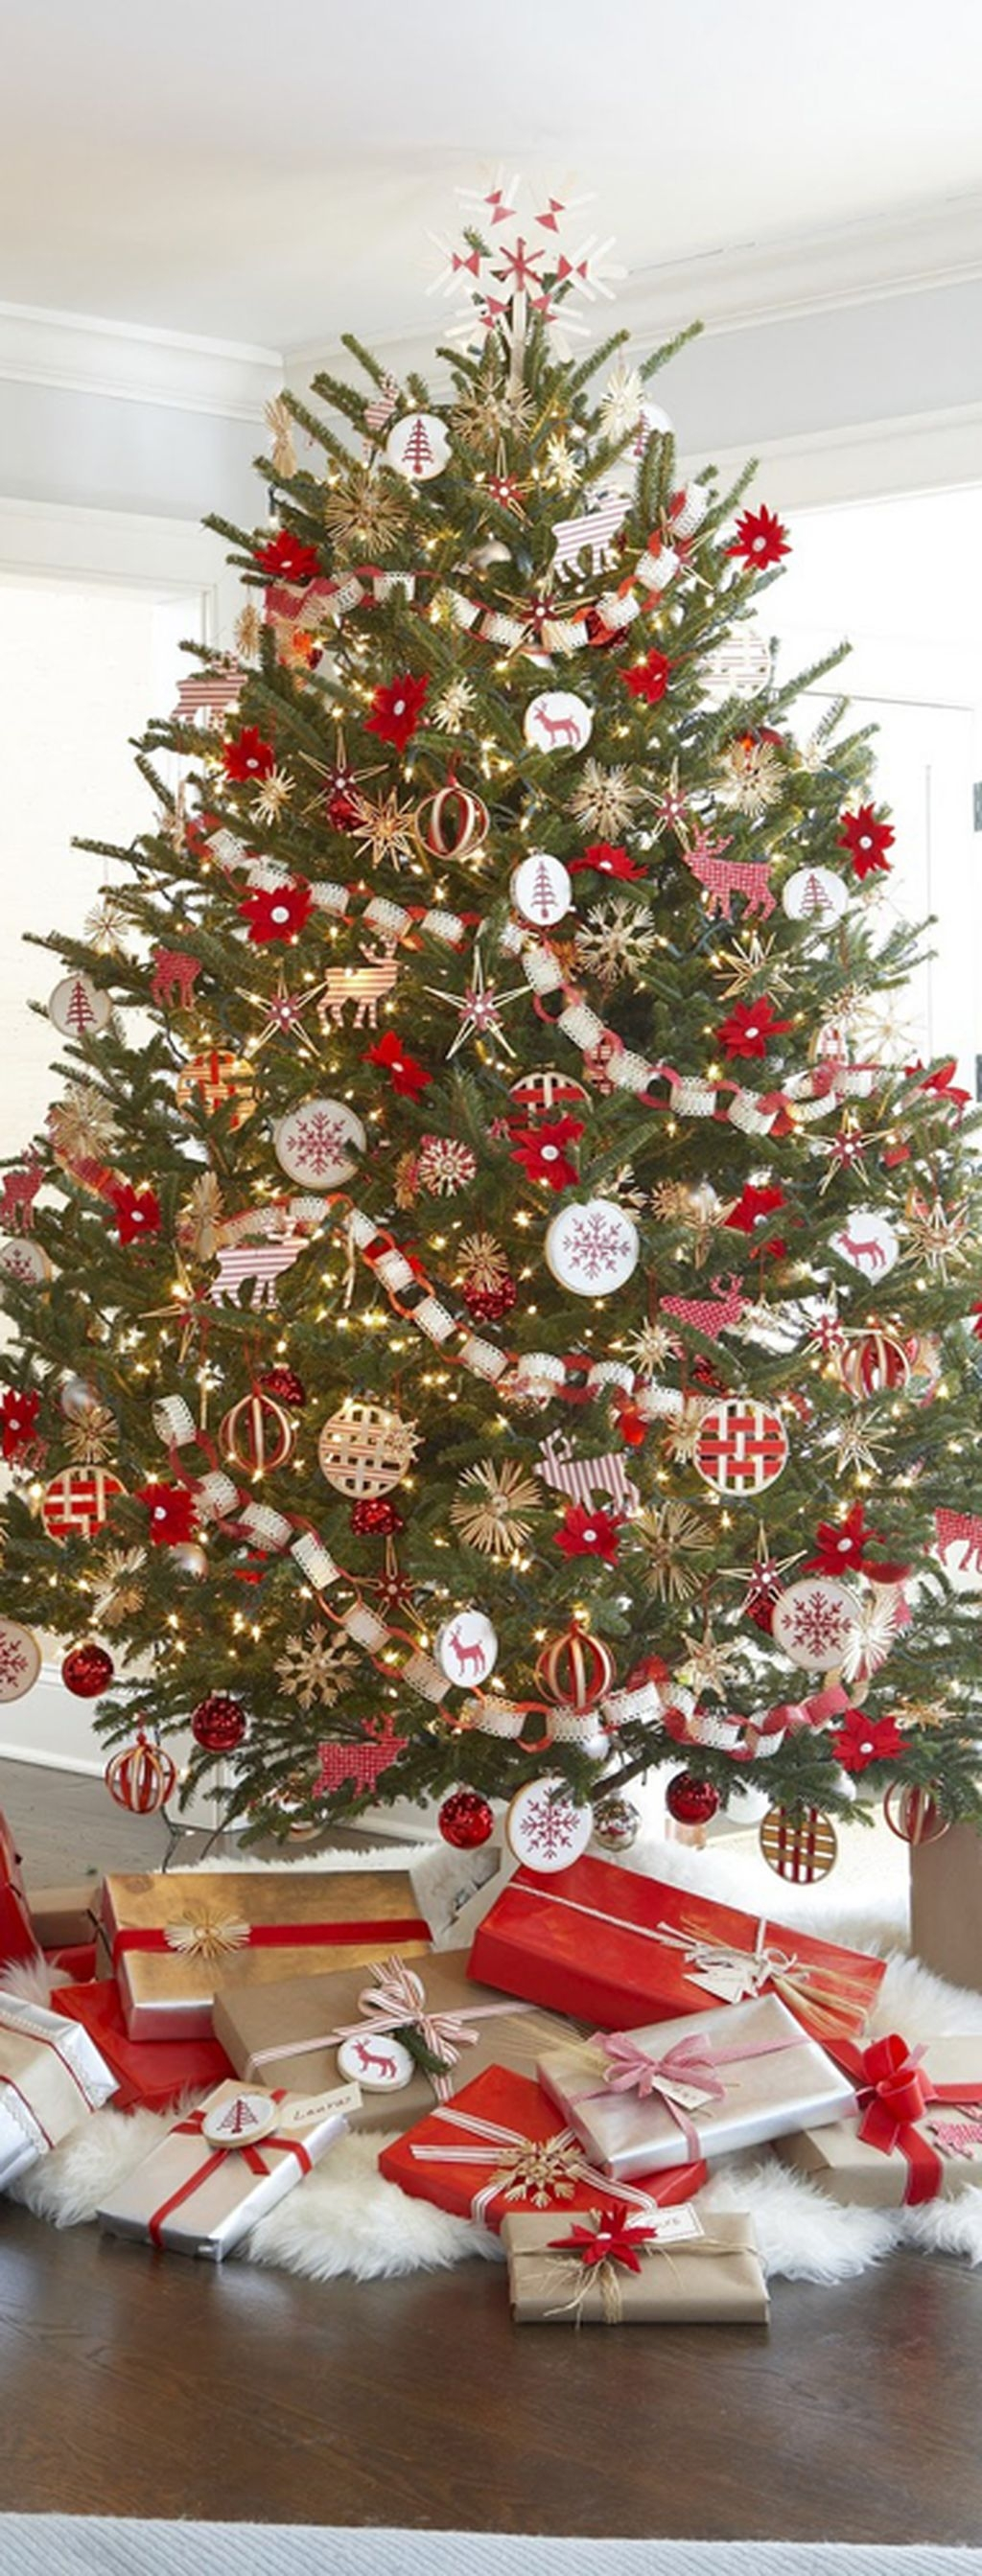 37 Totally Adorable Traditional Christmas Decoration Ideas 18